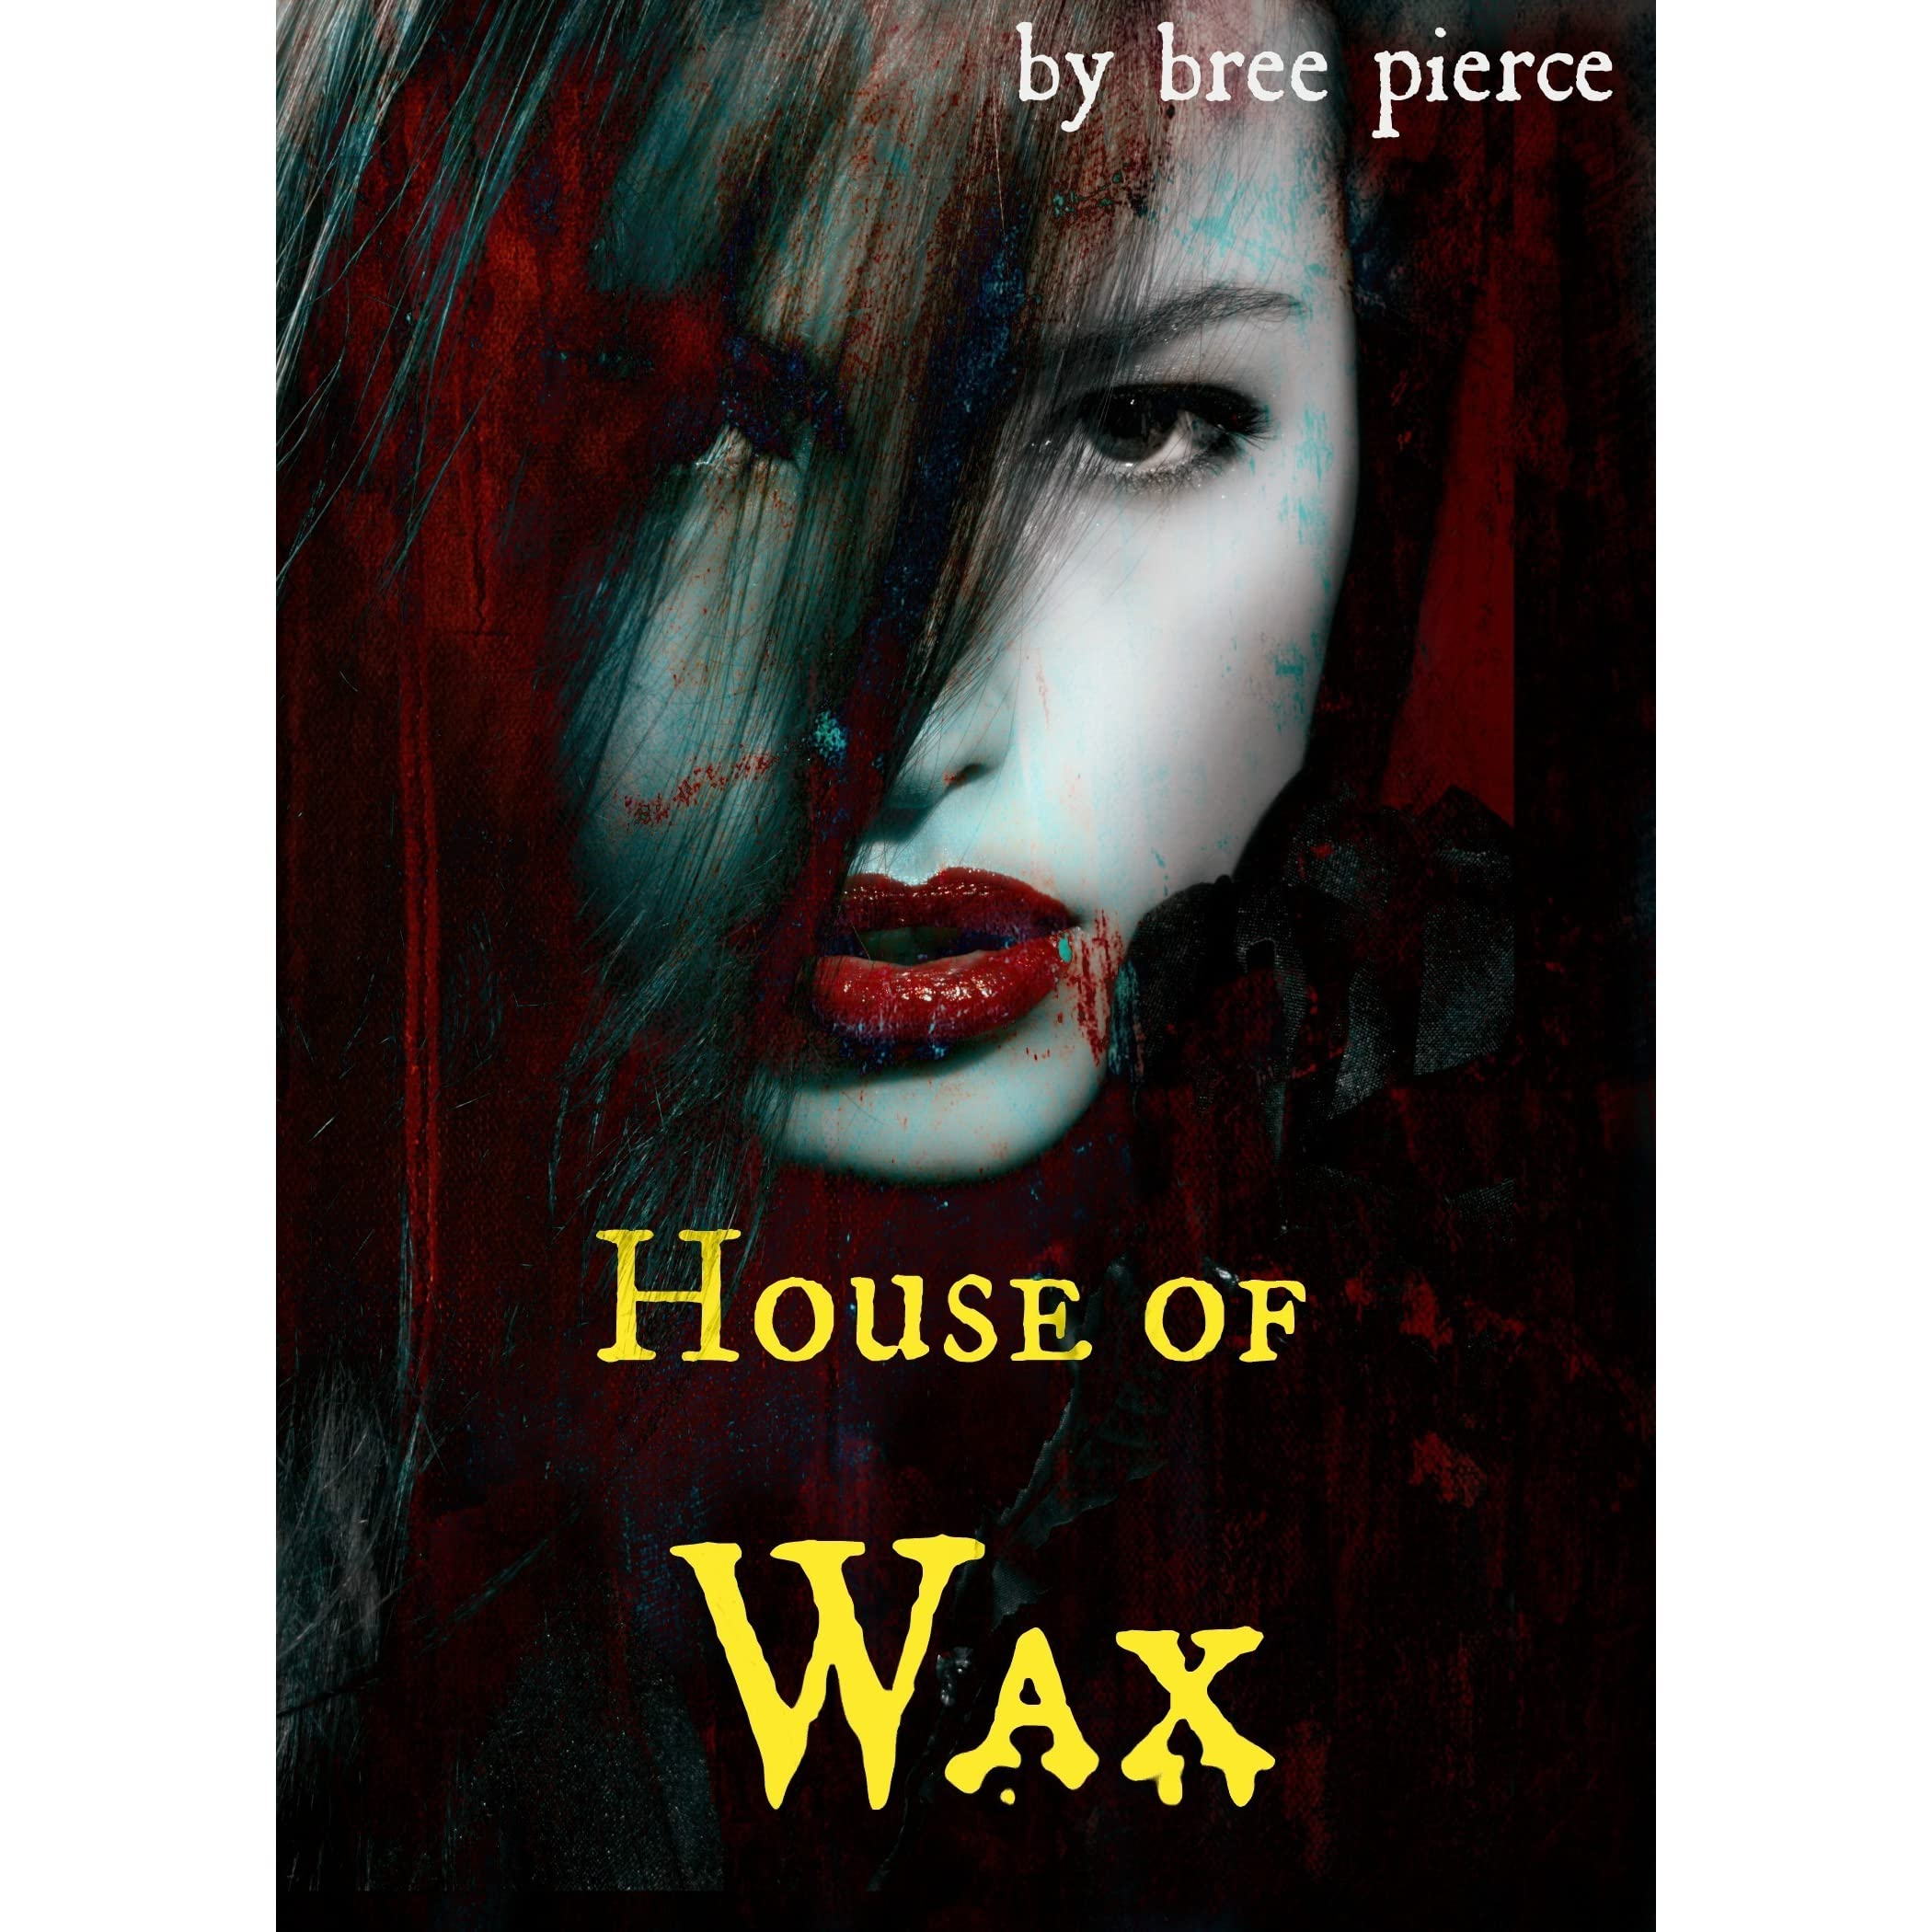 a review of house of wax